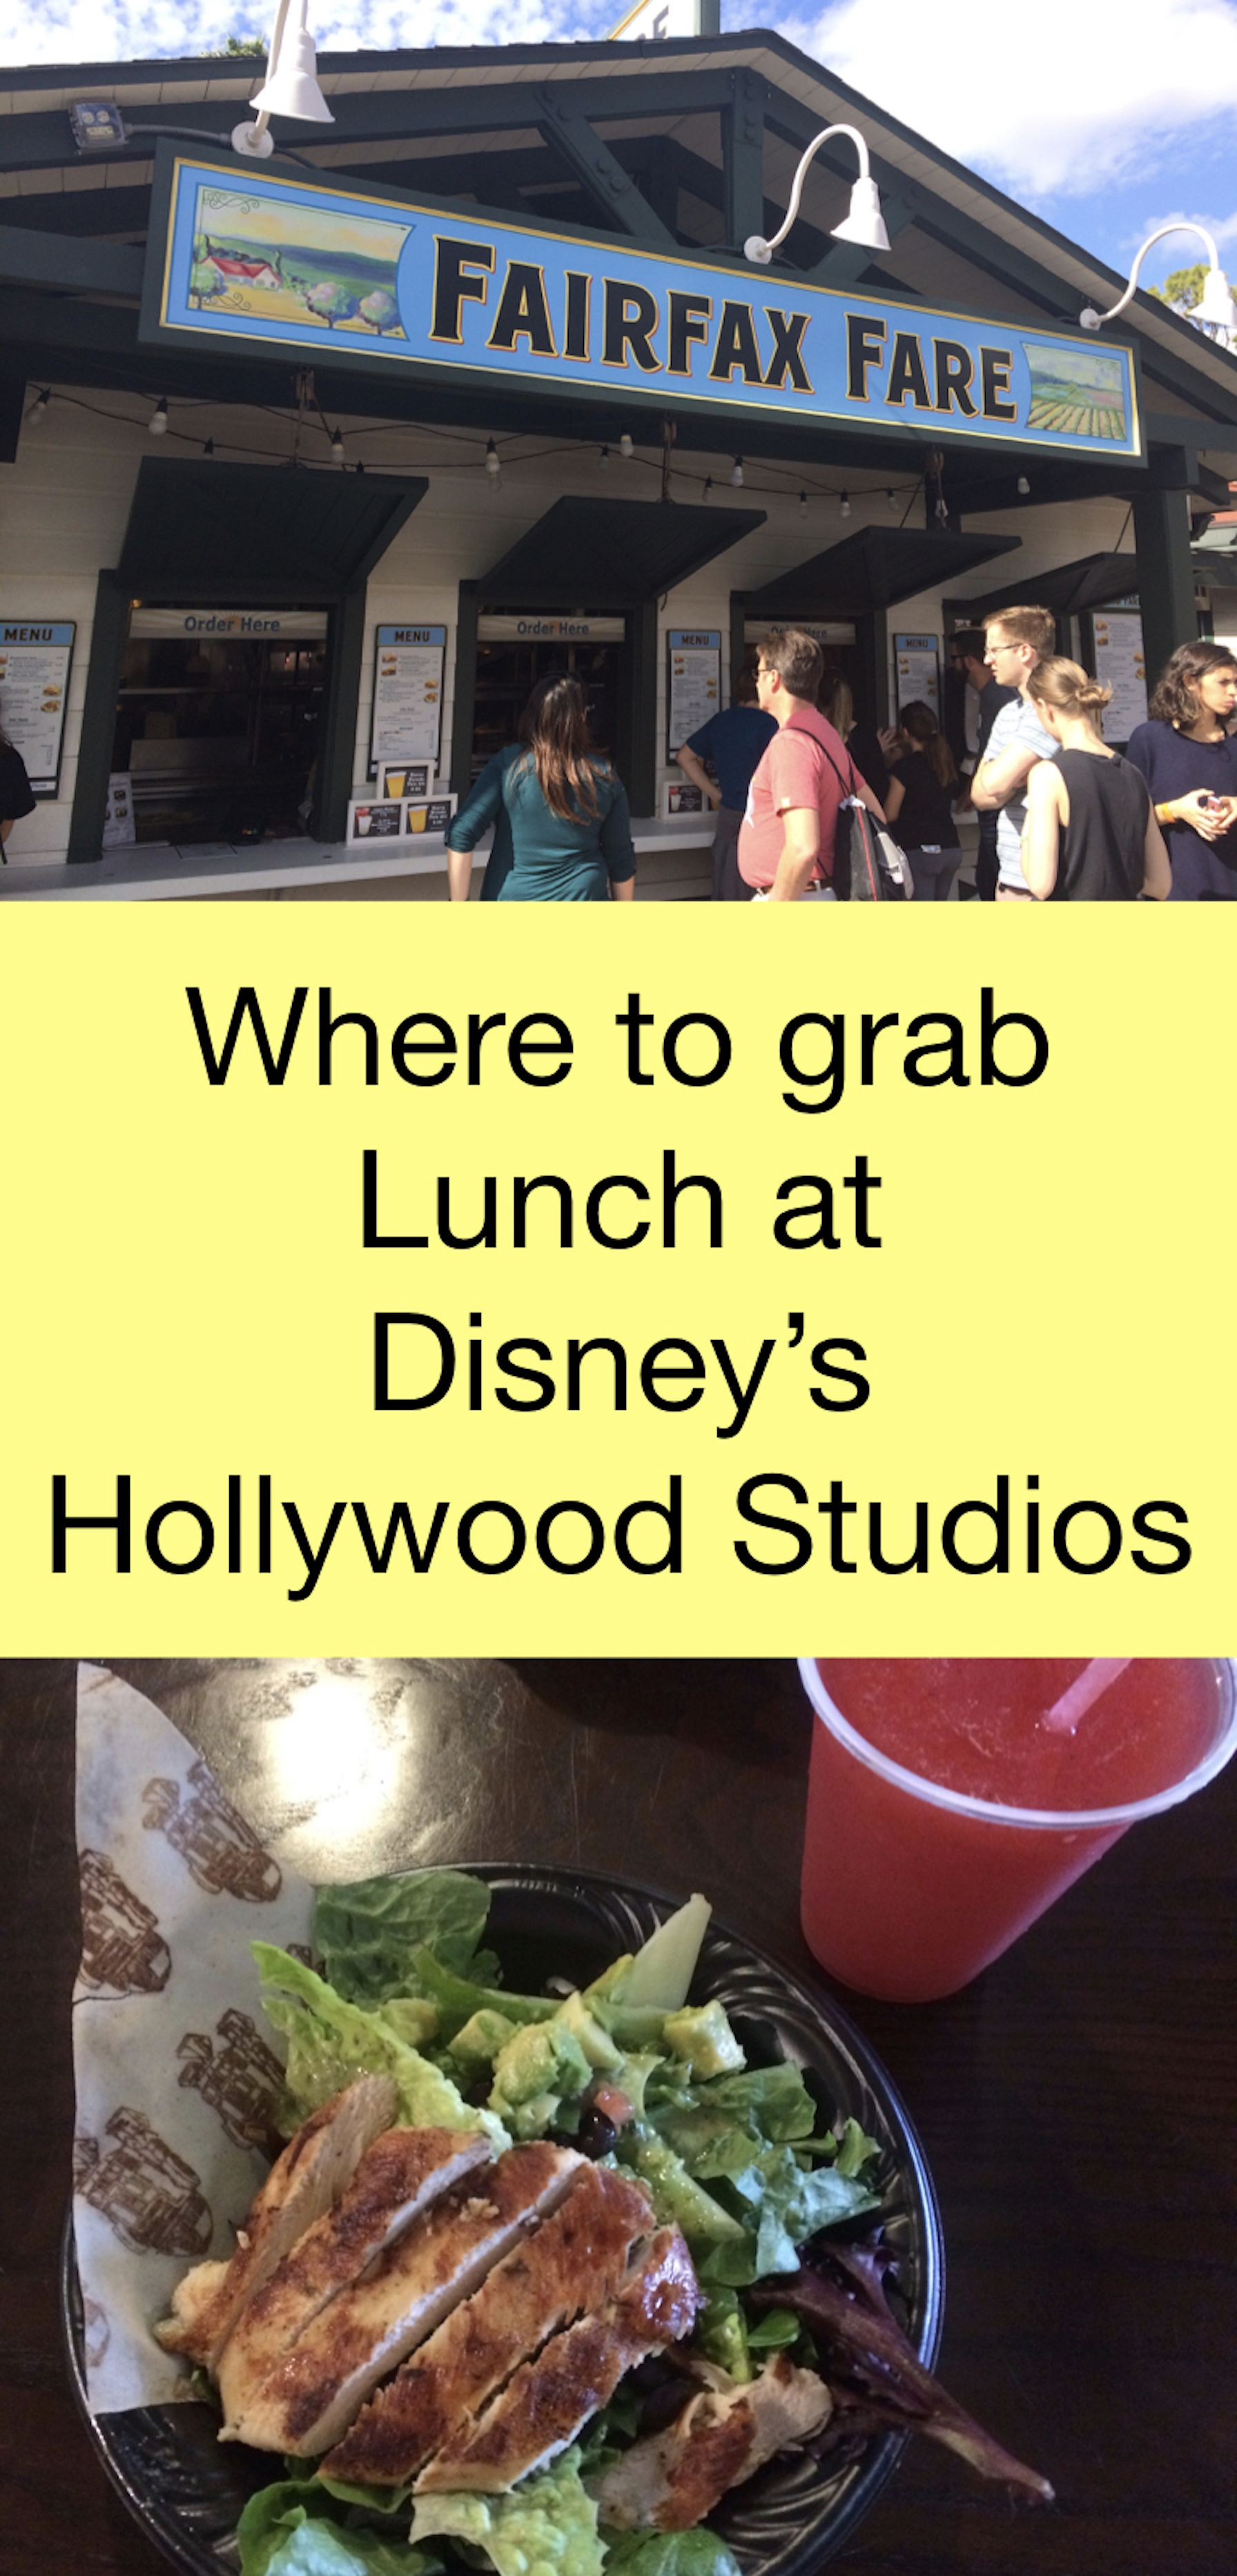 Check Out Your Options For Lunch At Hollywood Studios From Fine